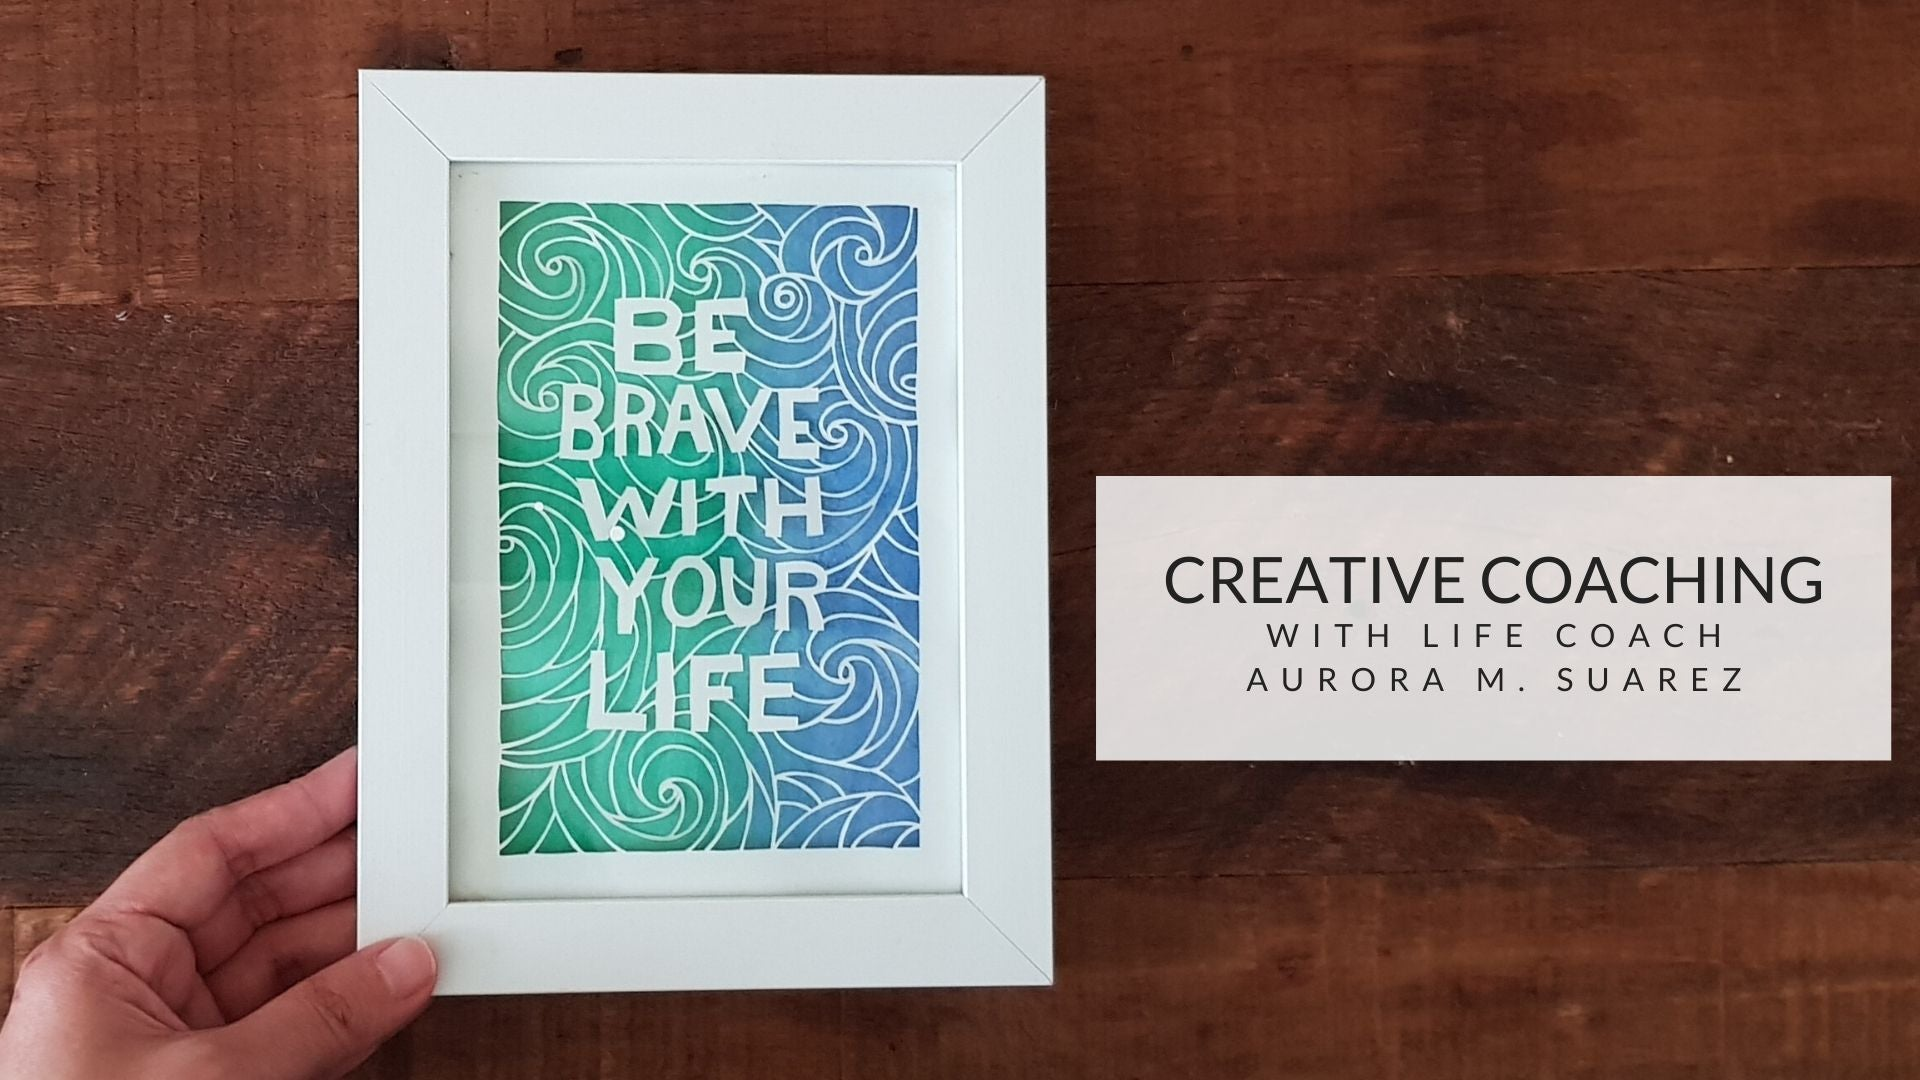 Creative Coaching: One-Hour Coaching Session with Aurora Suarez - Common Room PH